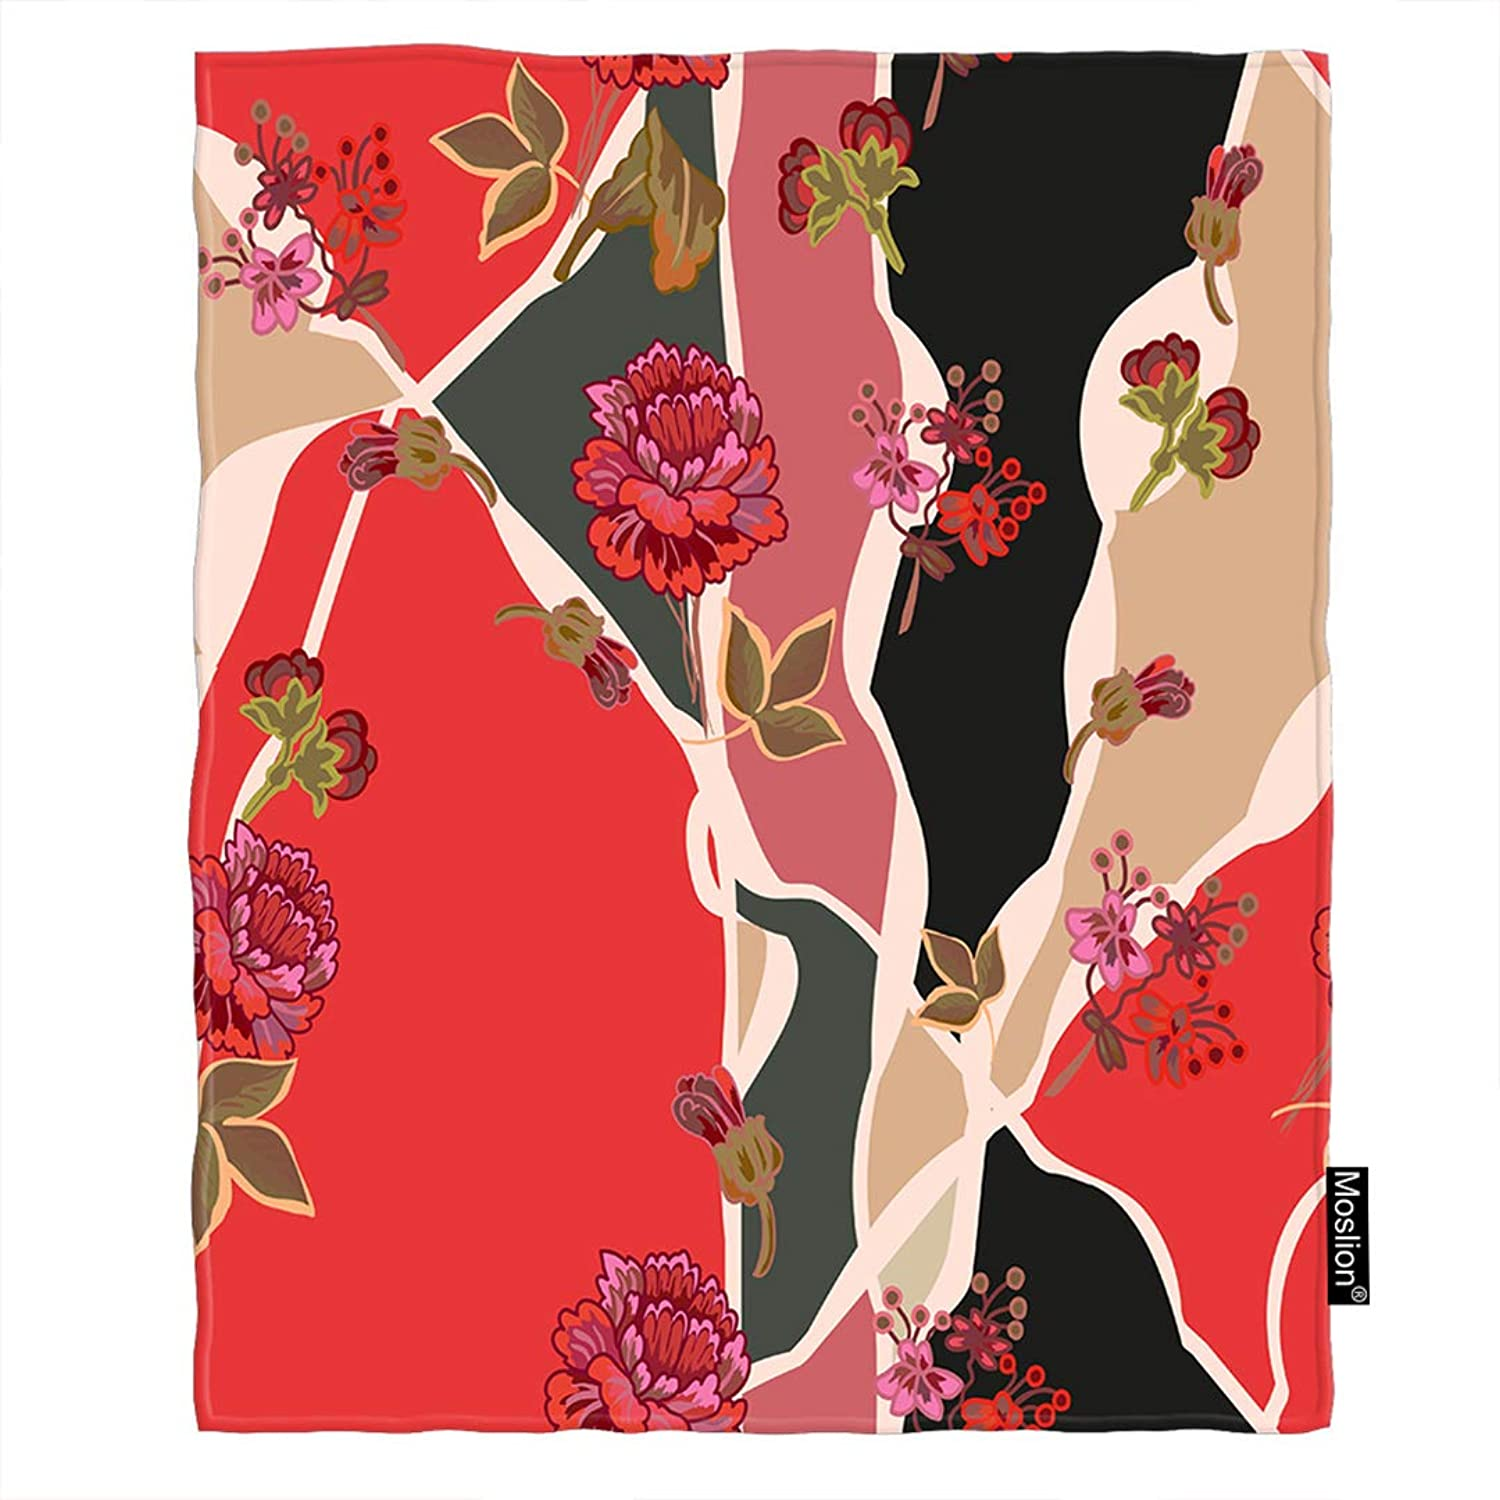 Moslion Floral Blanket Vintage Spring Ethnic Red Flowers Green Leaf on Tree Branch Throw Blanket Flannel Home Decorative Soft Cozy Blankets 60x80 Inch for Adults Kids Sofa